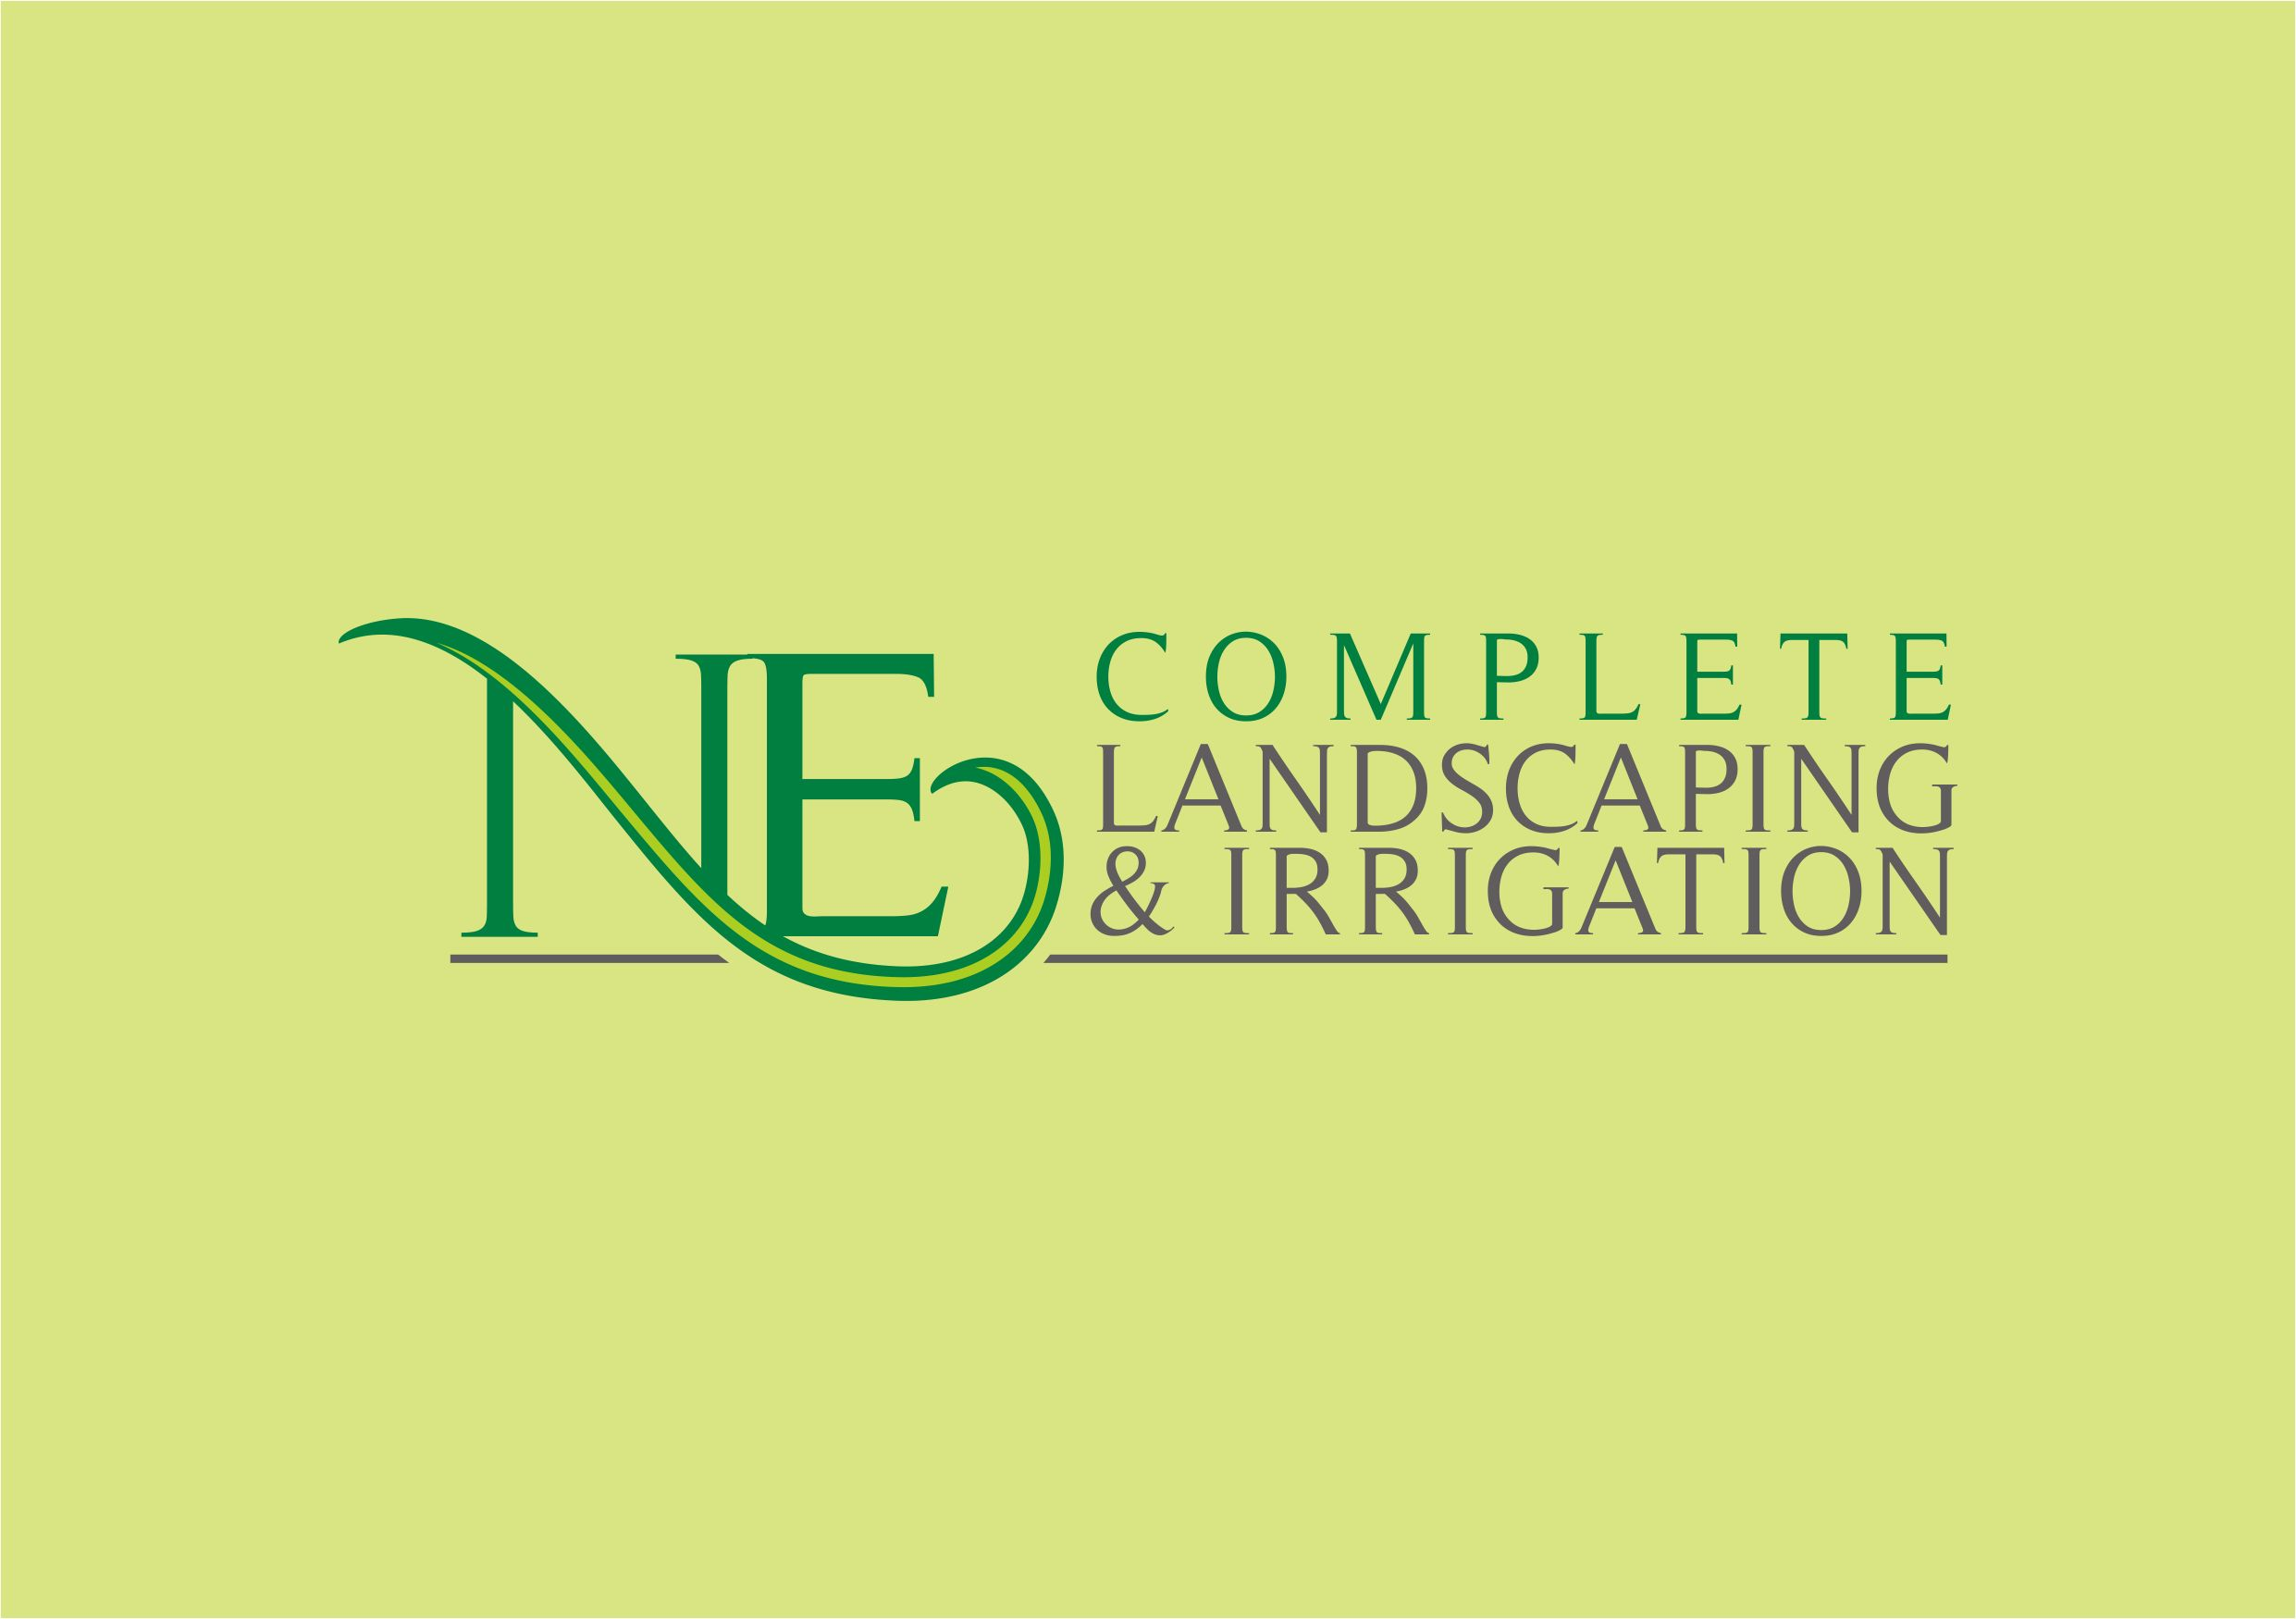 Logo Design by Teguh Mudjianto - Entry No. 6 in the Logo Design Contest Fun Logo Design for ne complete landscaping and irrigation.